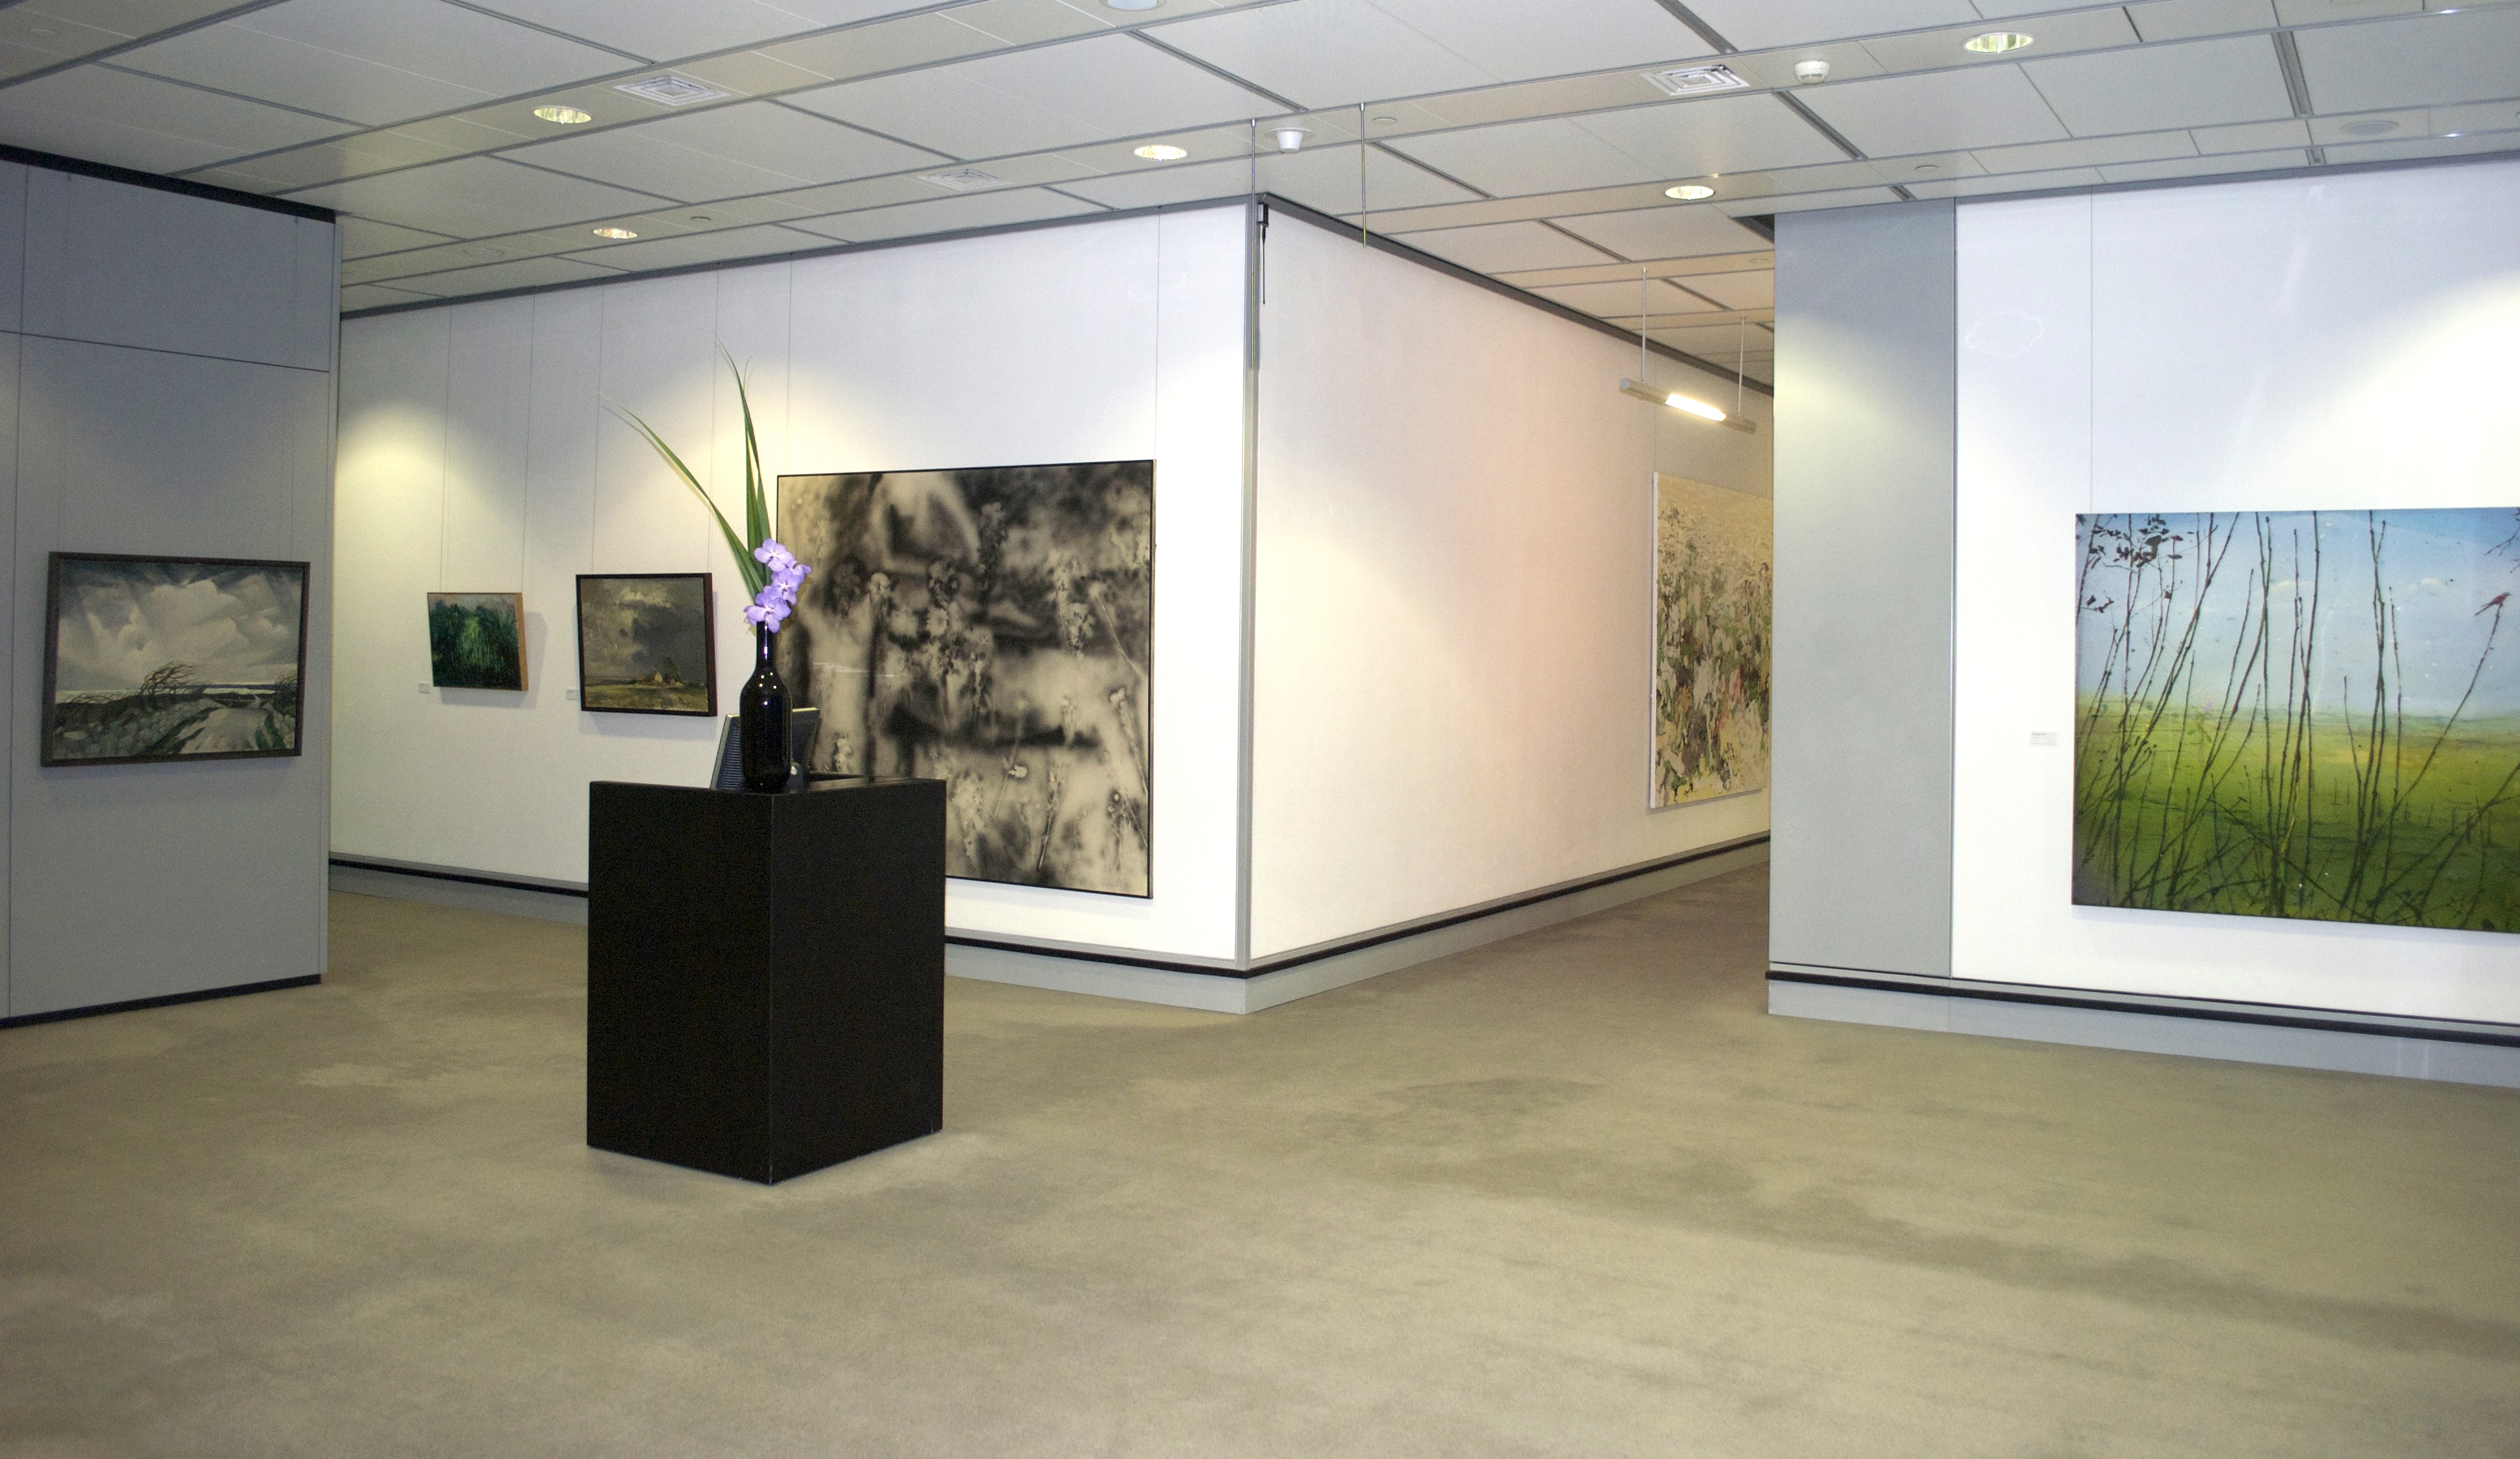 HSBC Bank: Exhibition curating and art collecting thumbnail